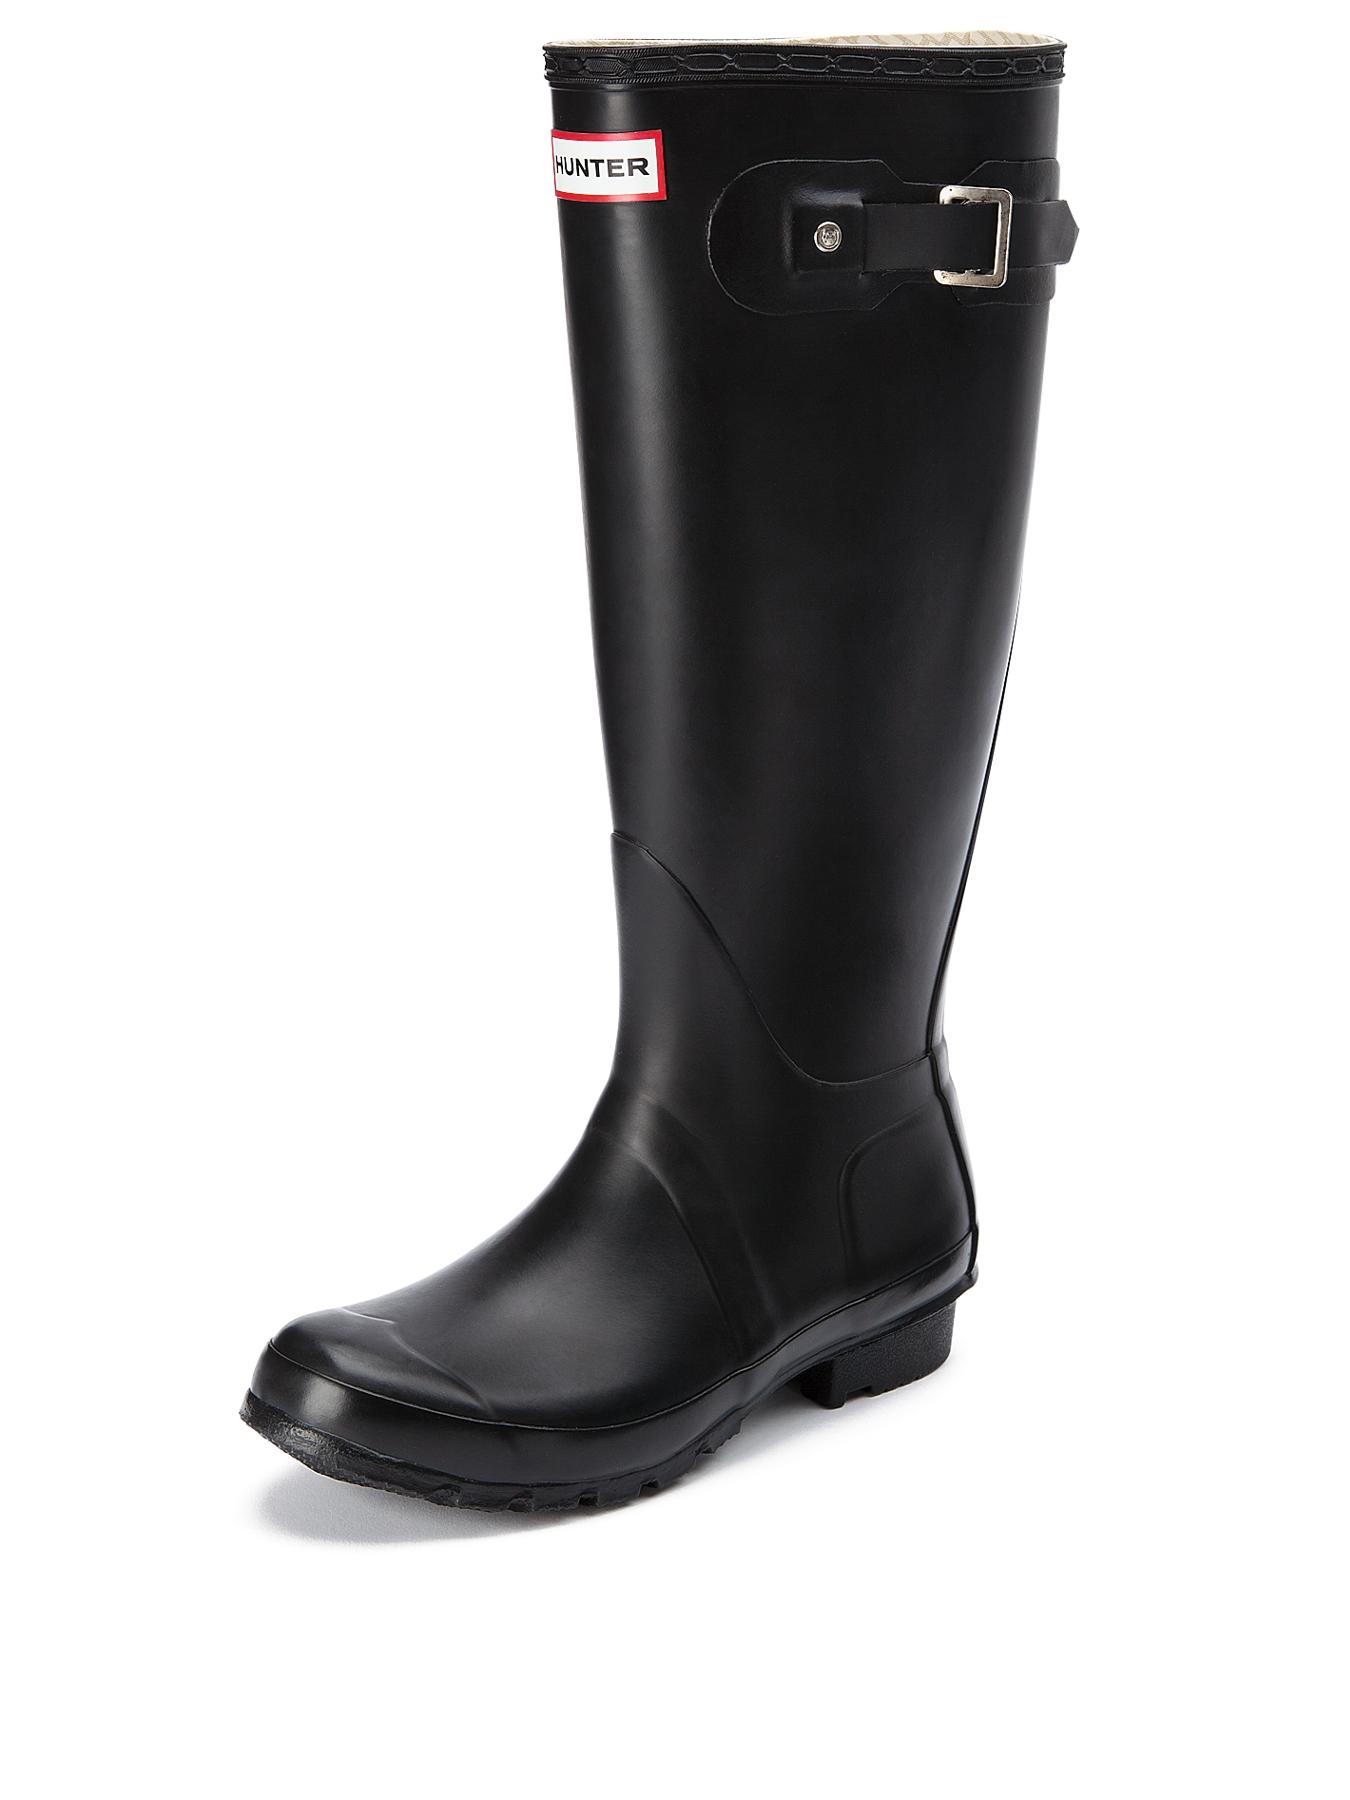 Hunter Original Tall Wellies - Black, Black